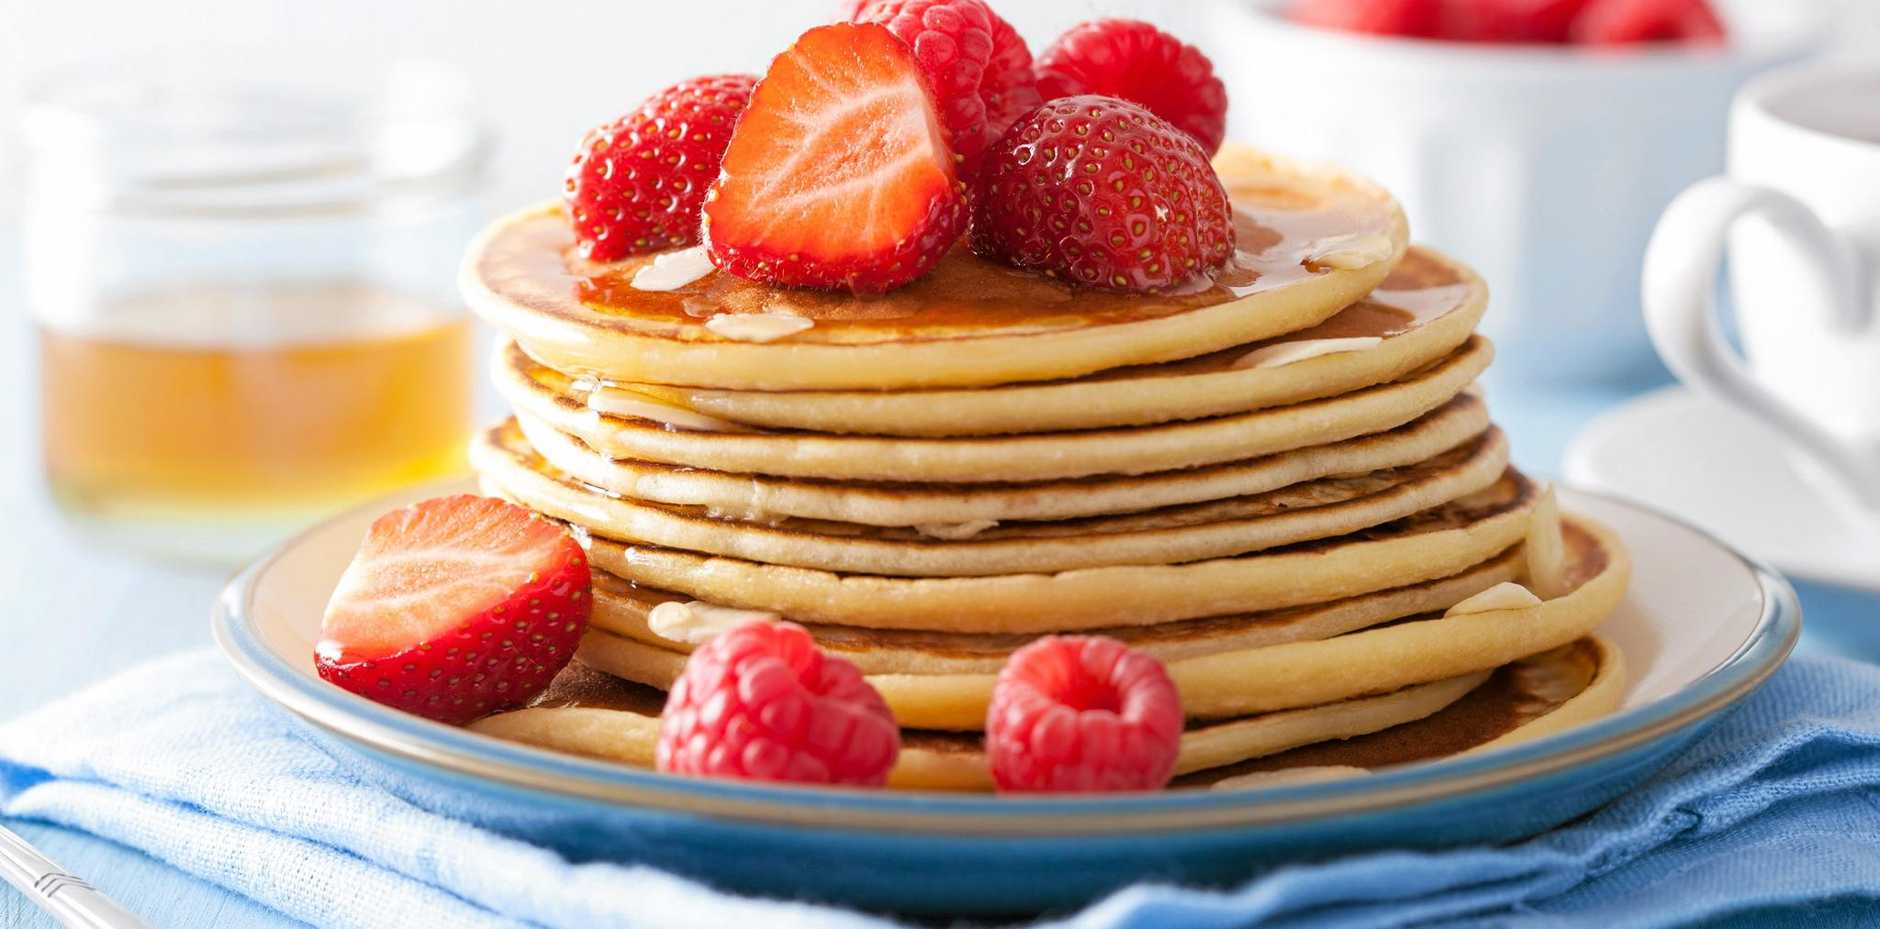 Treat yourself to pancakes with berries and maple syrup.